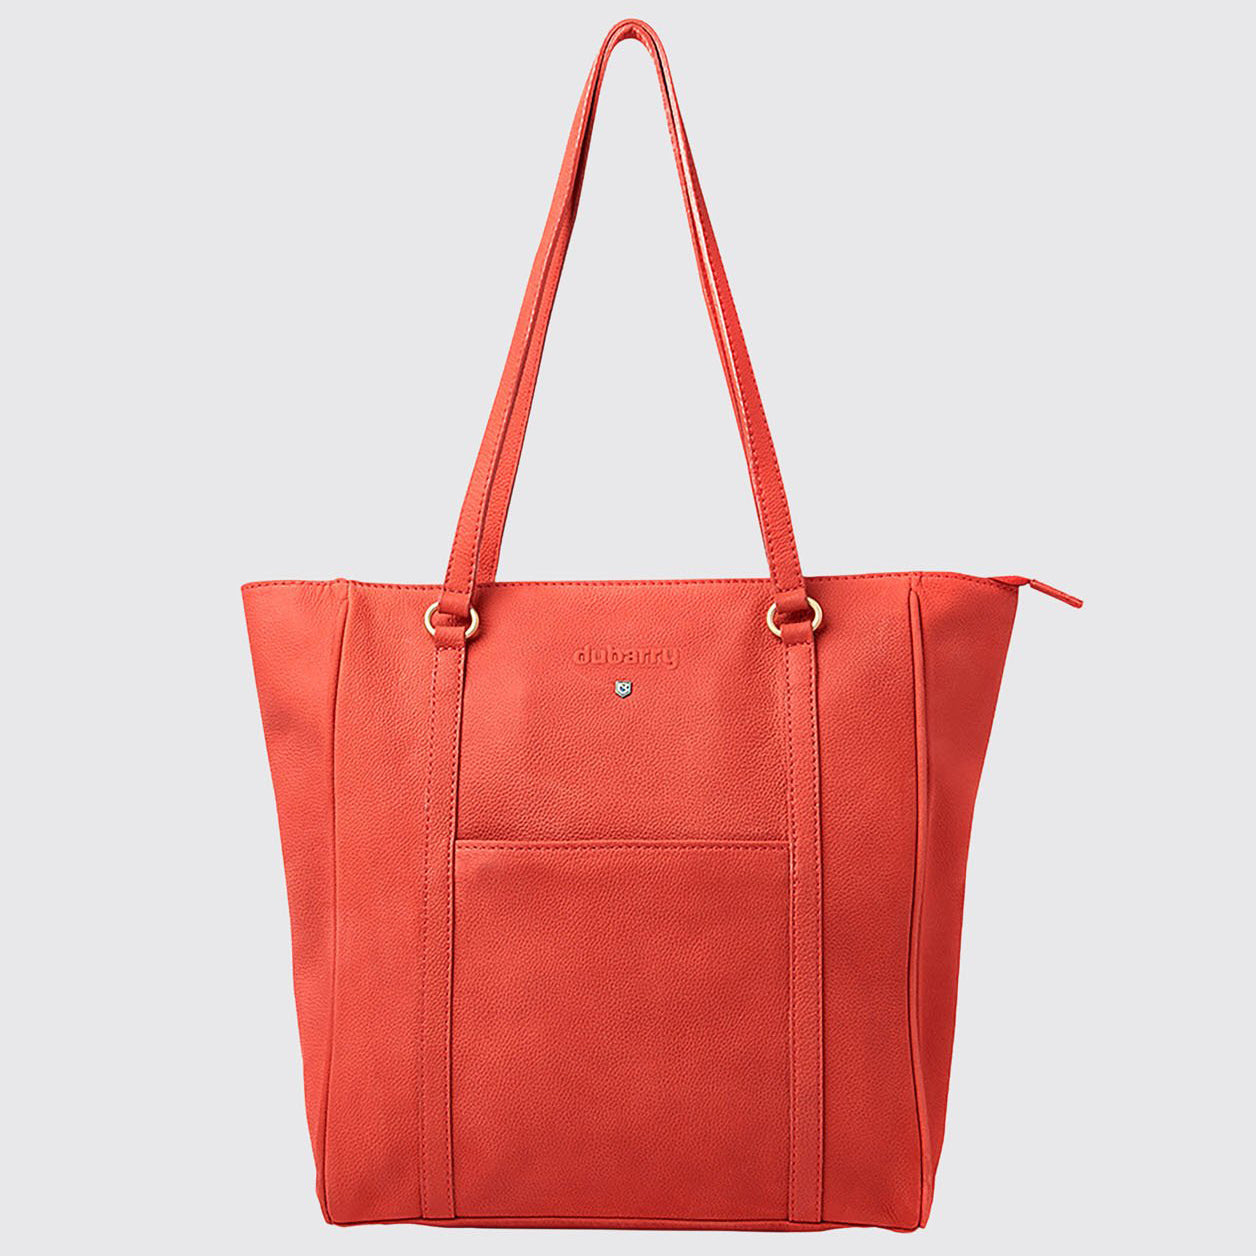 Dubarry Arcadia Tote Bag